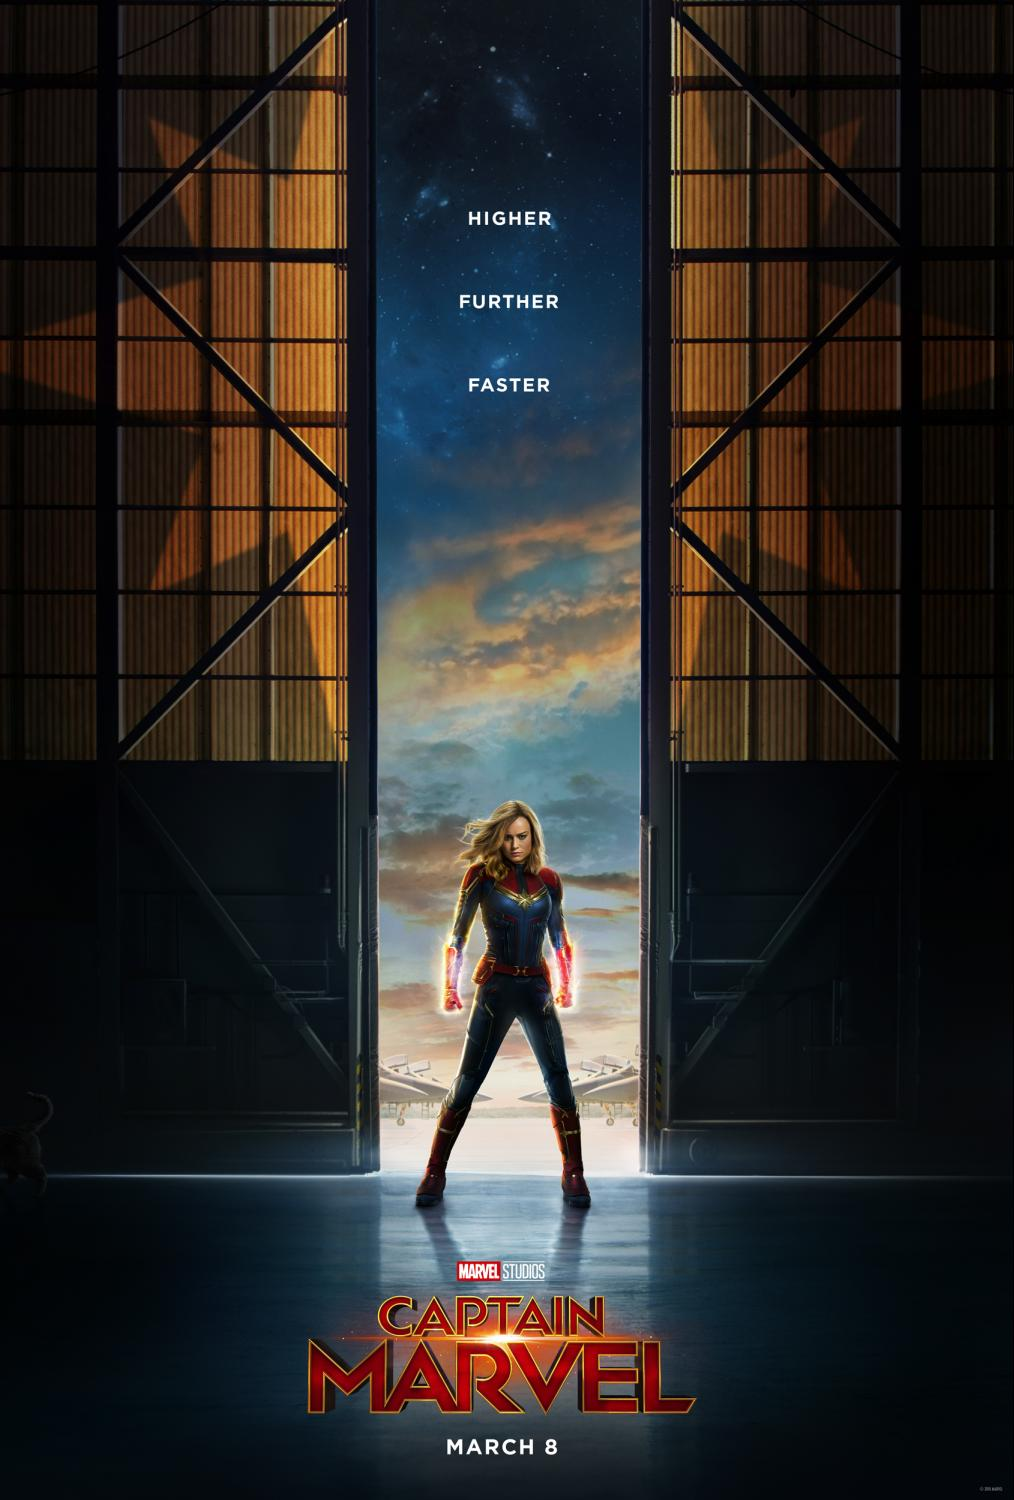 CaptainMarvel5ba10012bb485.jpg